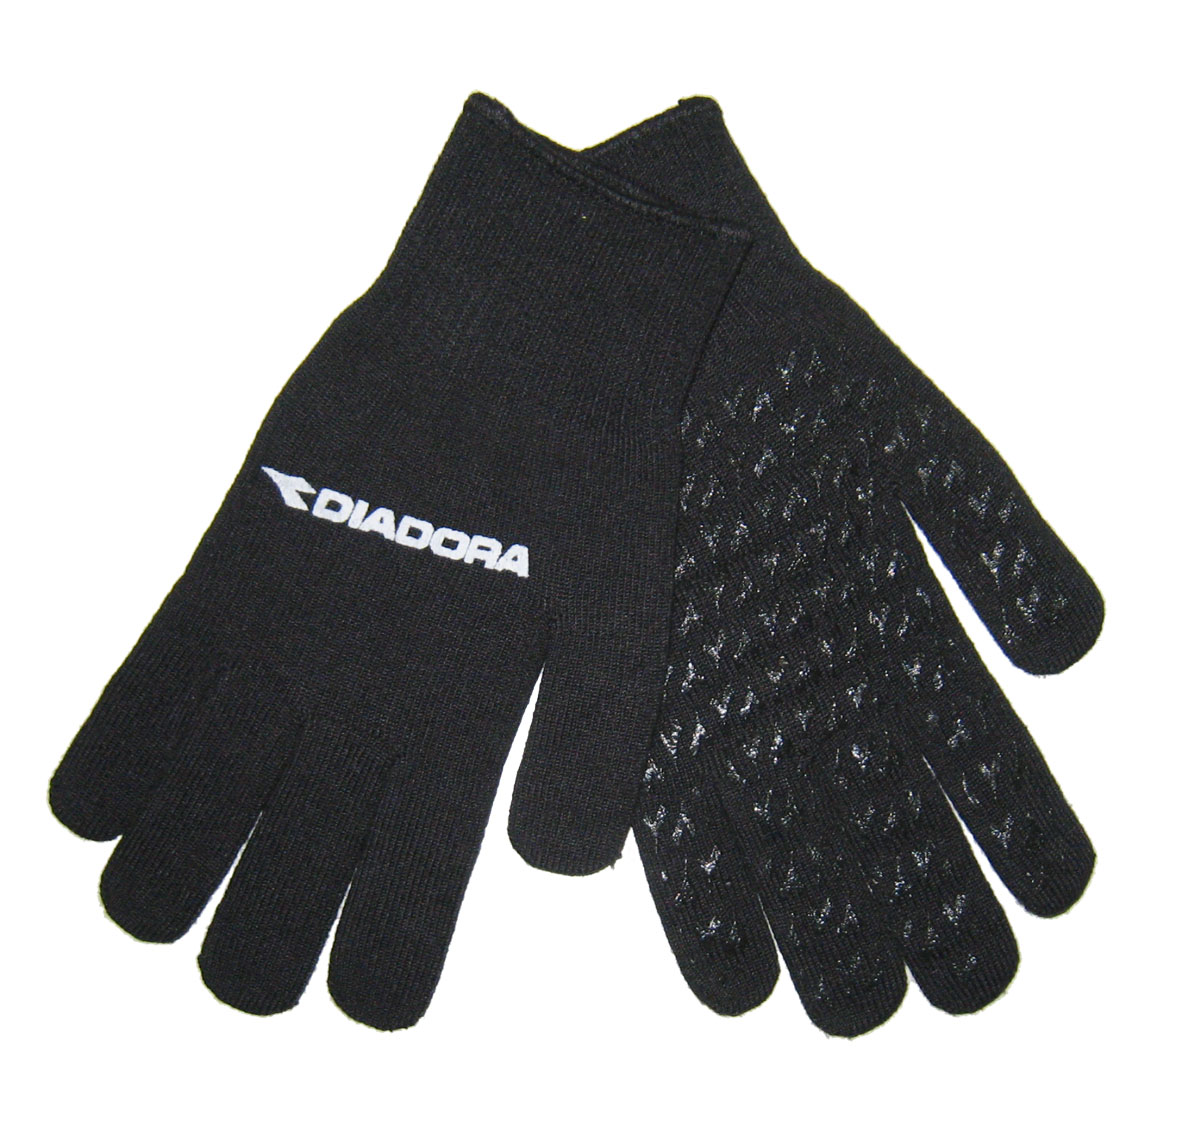 Diadora Soccer Player Gloves by Code Four Athletics